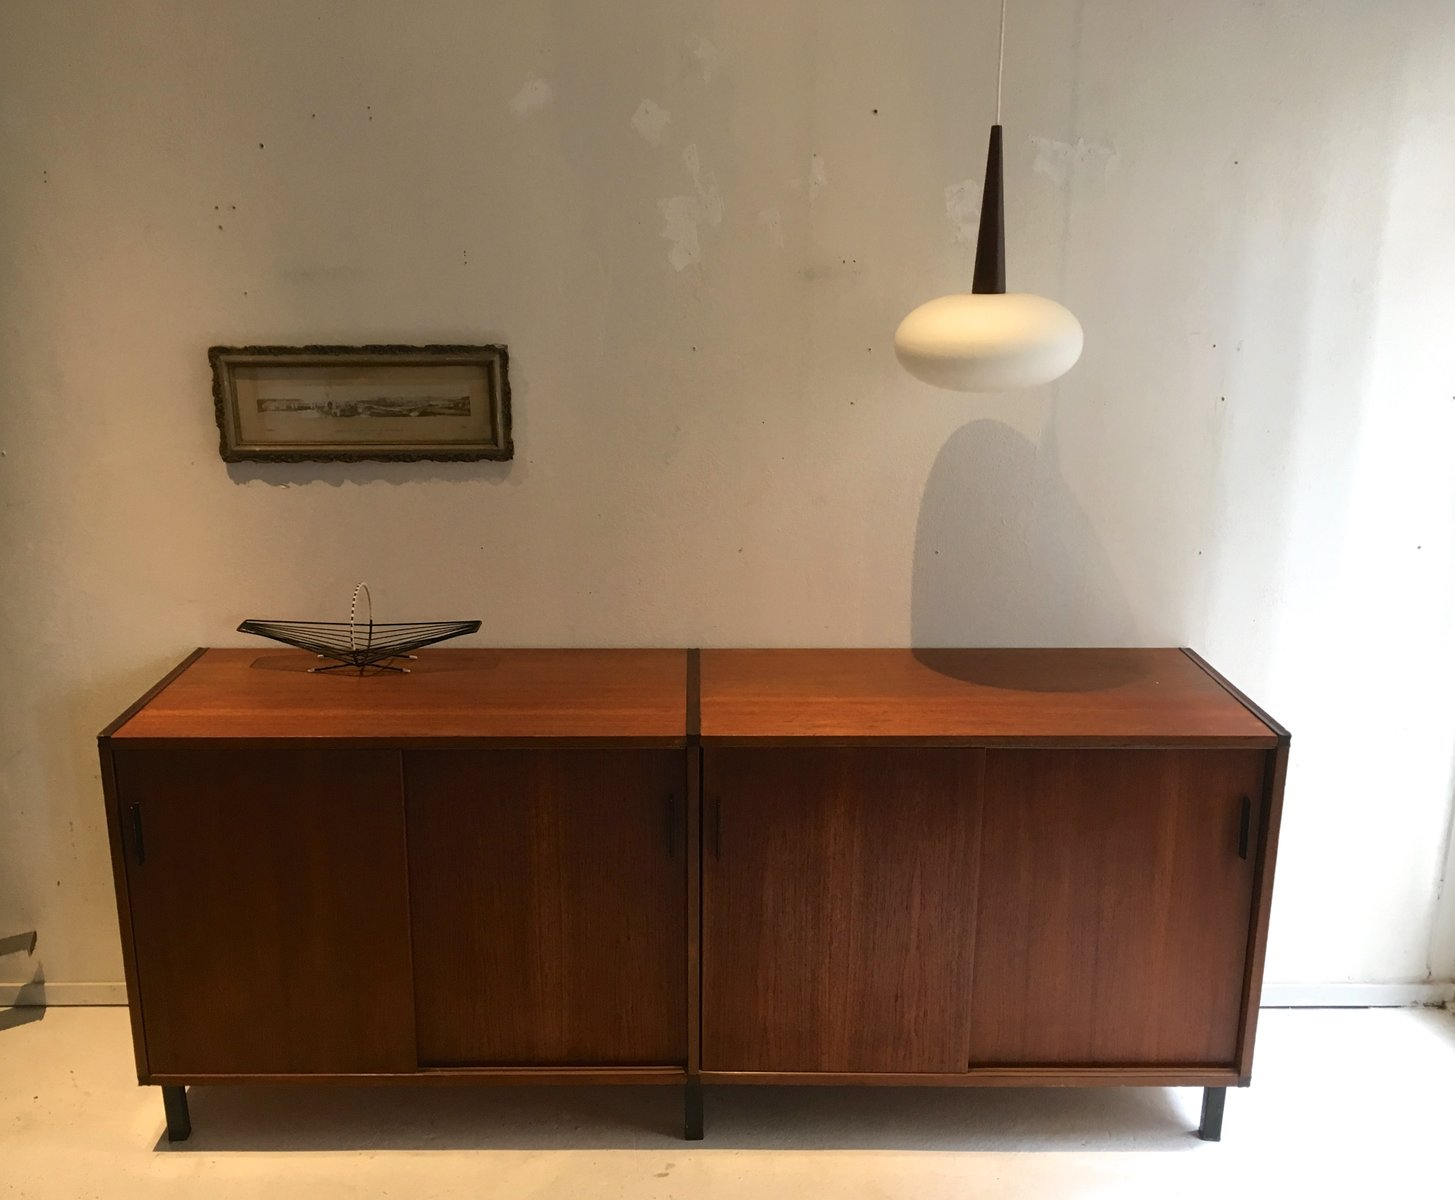 vintage teak sideboard mit schiebet ren von cees braakman. Black Bedroom Furniture Sets. Home Design Ideas